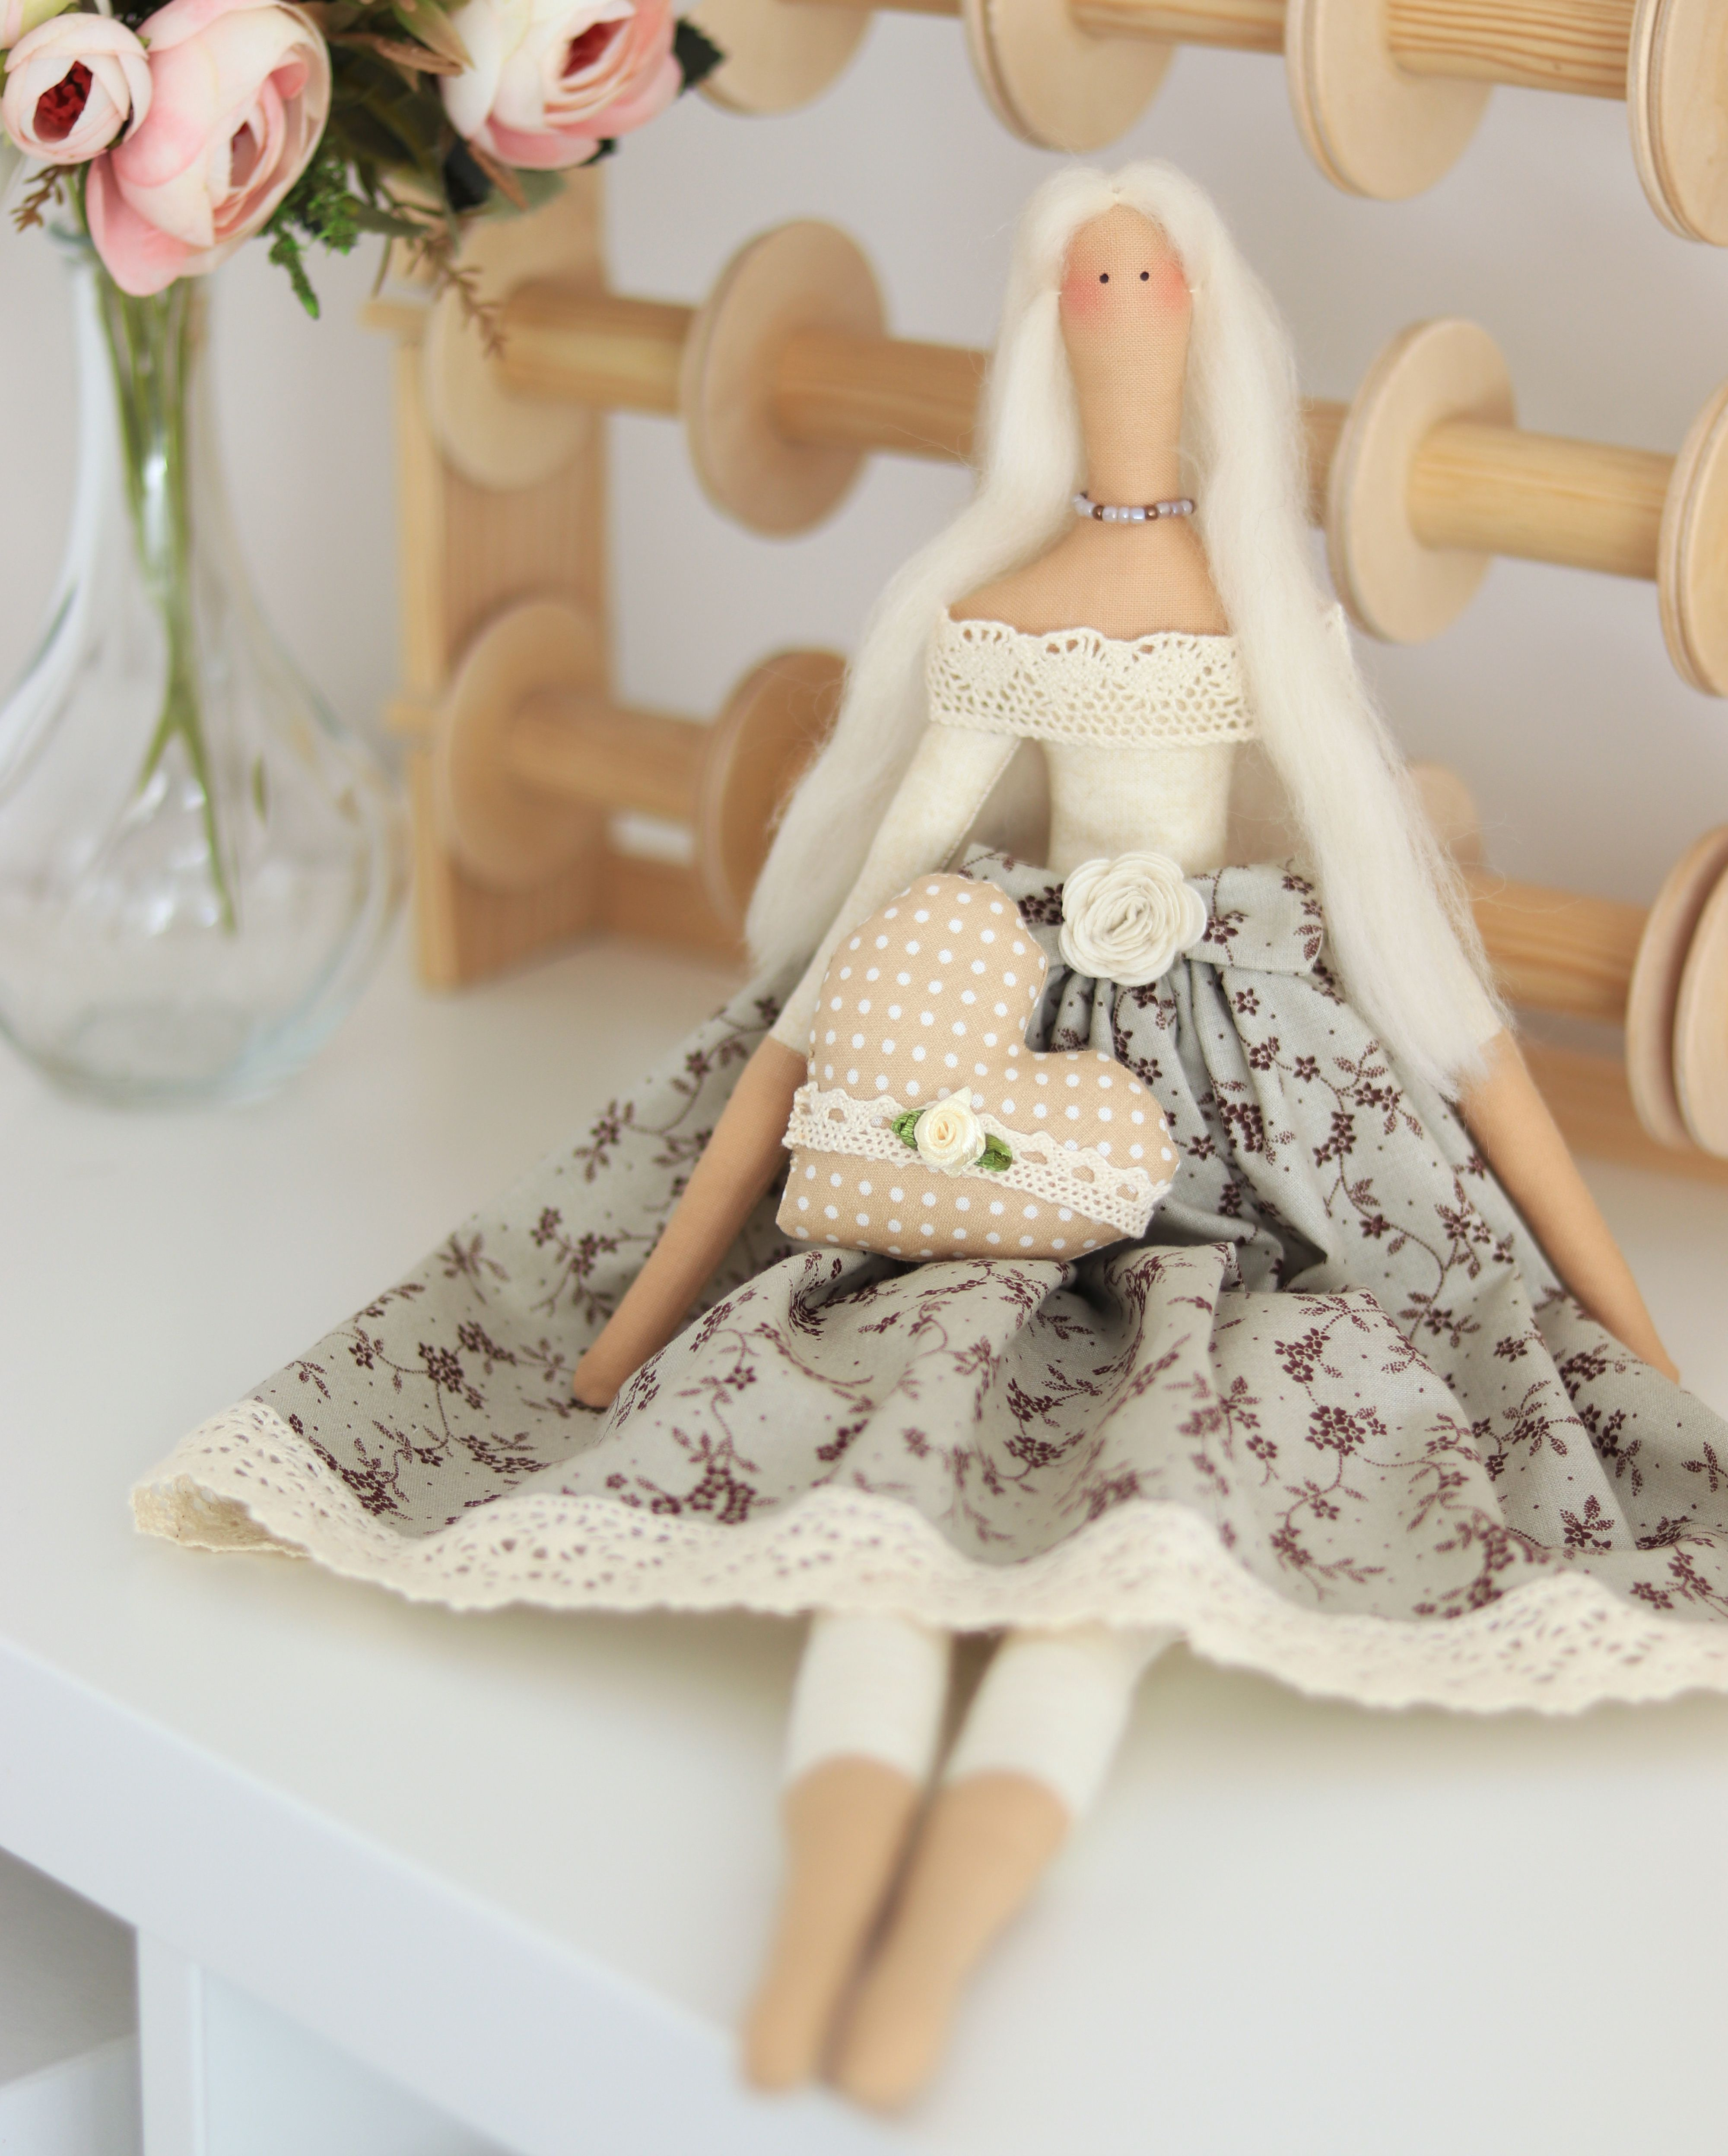 tilda doll Cloth dolls handmade soft yarn girlfriend christmas gift 30th birthday gift for her